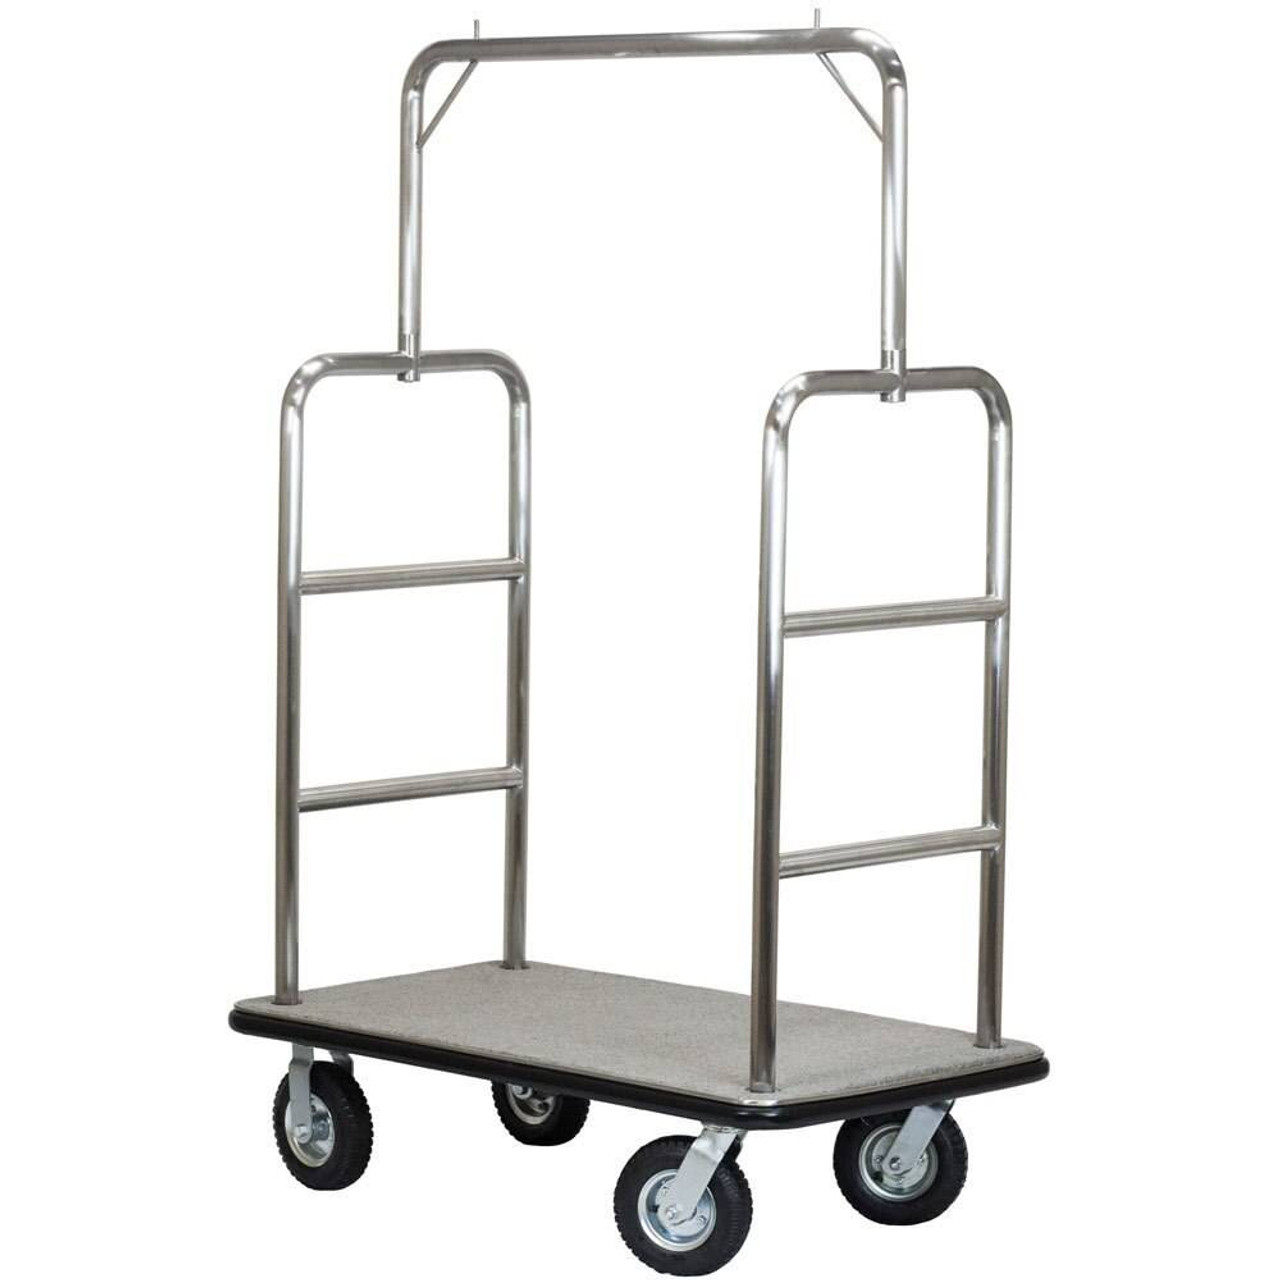 HOSPITALITY 1 SOURCE HOSPITALITY 1 SOURCE or MIDTOWN SERIES or BRUSHED STAINLESS STEEL or BELLMANS CART